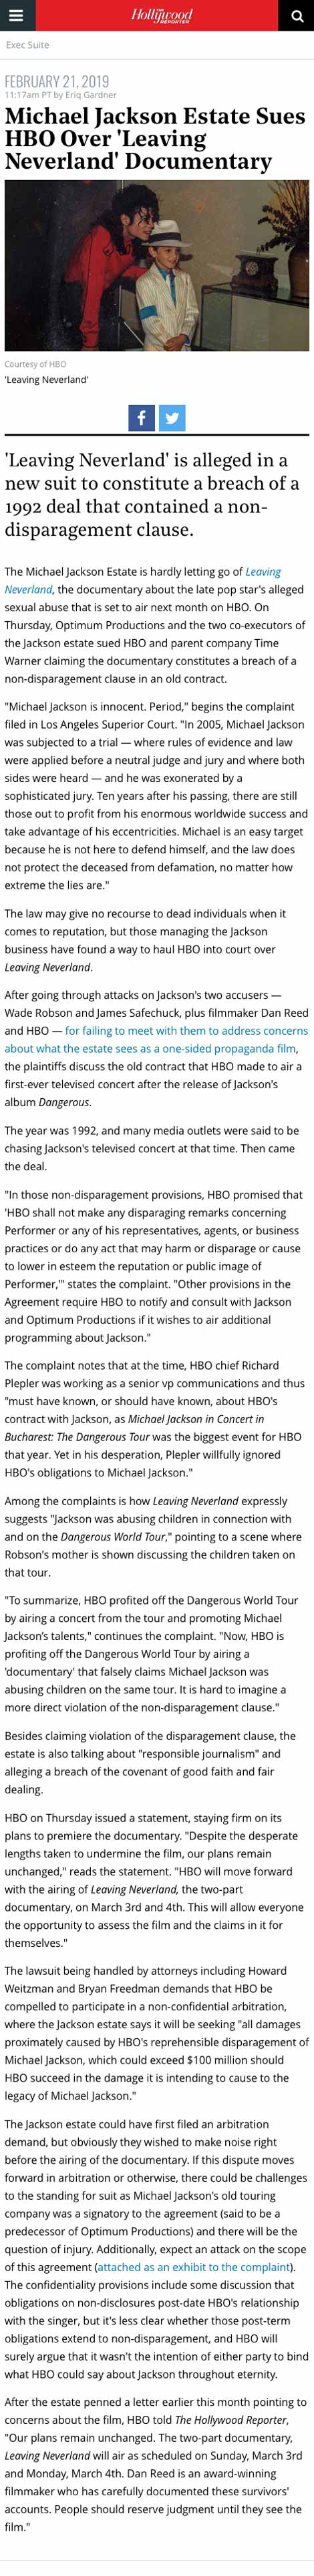 Michael Jackson Estate Sues HBO Over 'Leaving Neverland' Documentary - article by HollywoodReporter.com